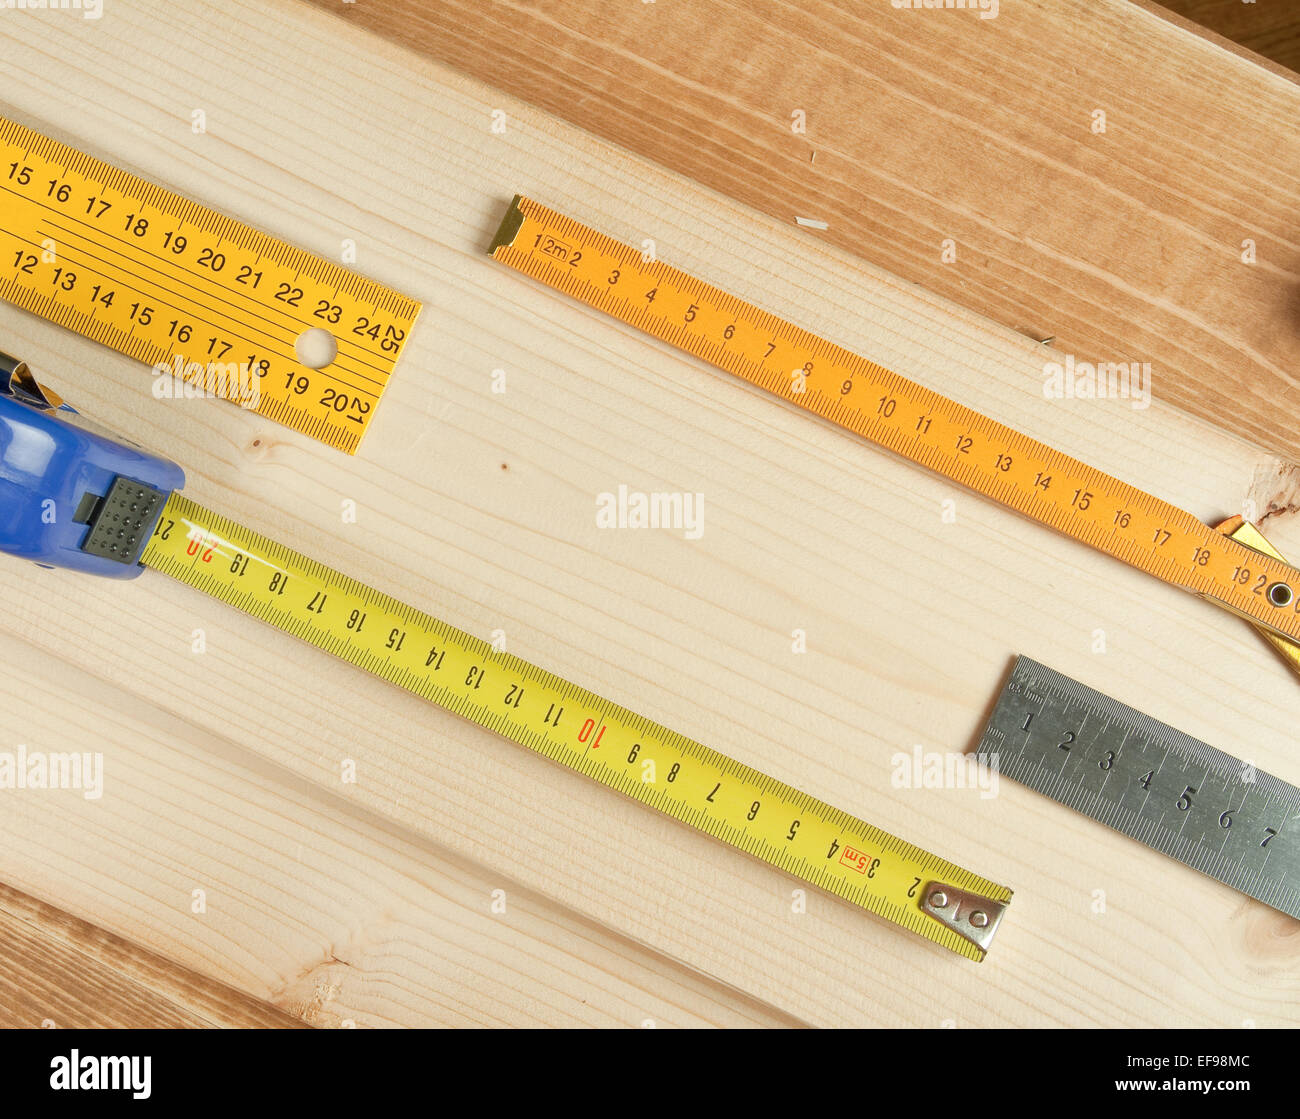 Rulers on a wooden background. - Stock Image